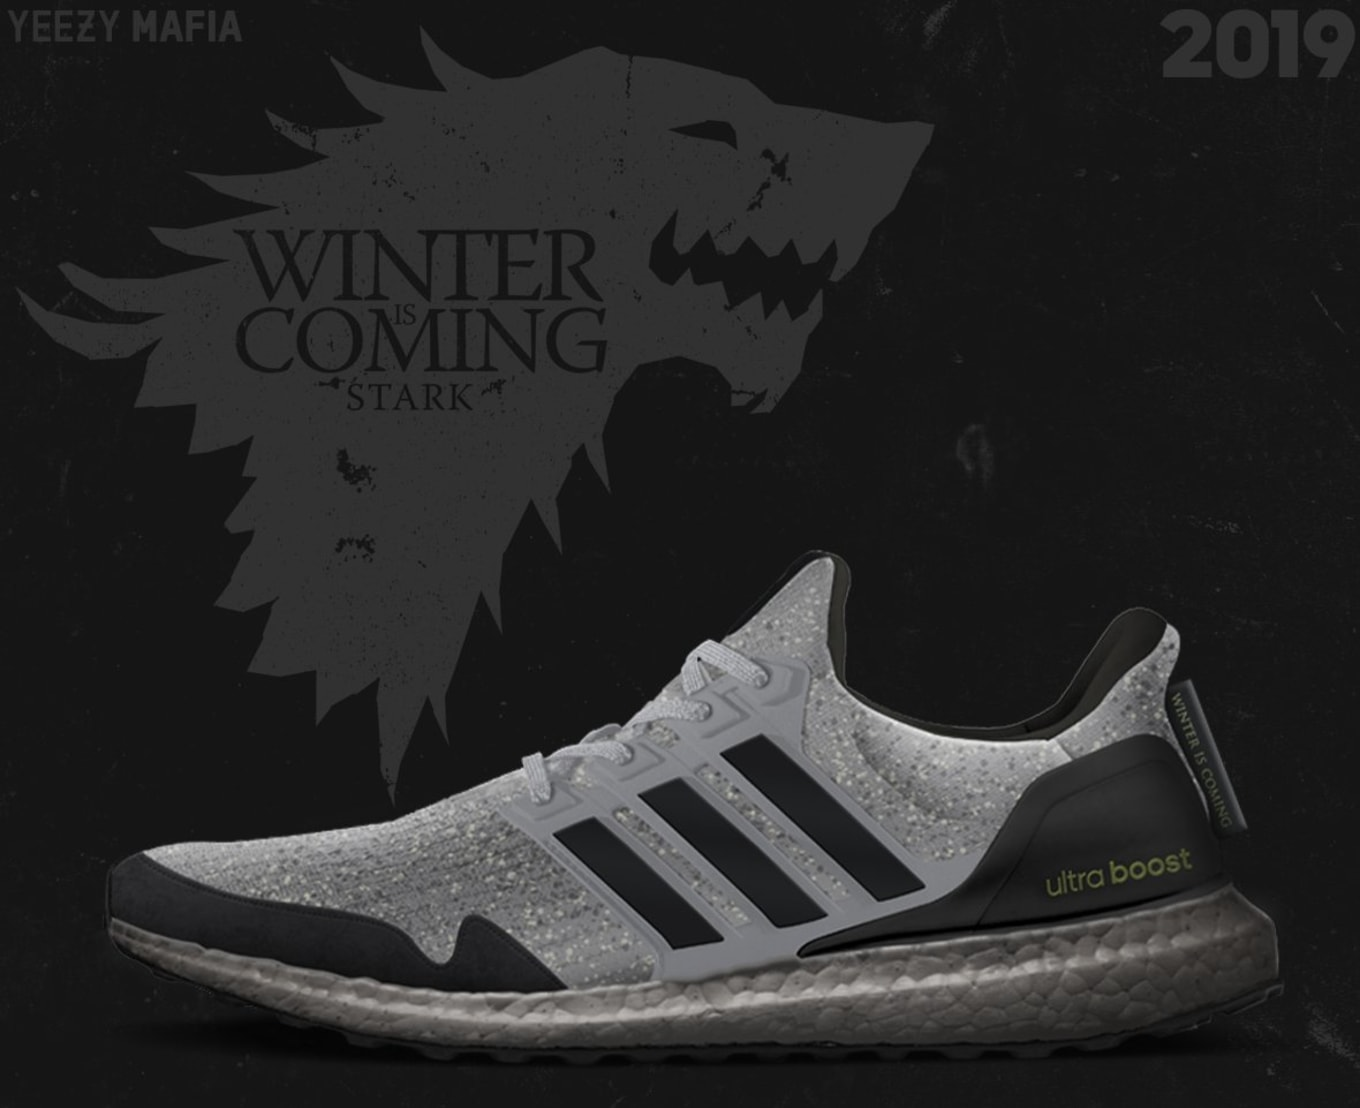 ba3883b212d4a Game of Thrones x Adidas Ultra Boost Sneaker Collaboration 2019 ...